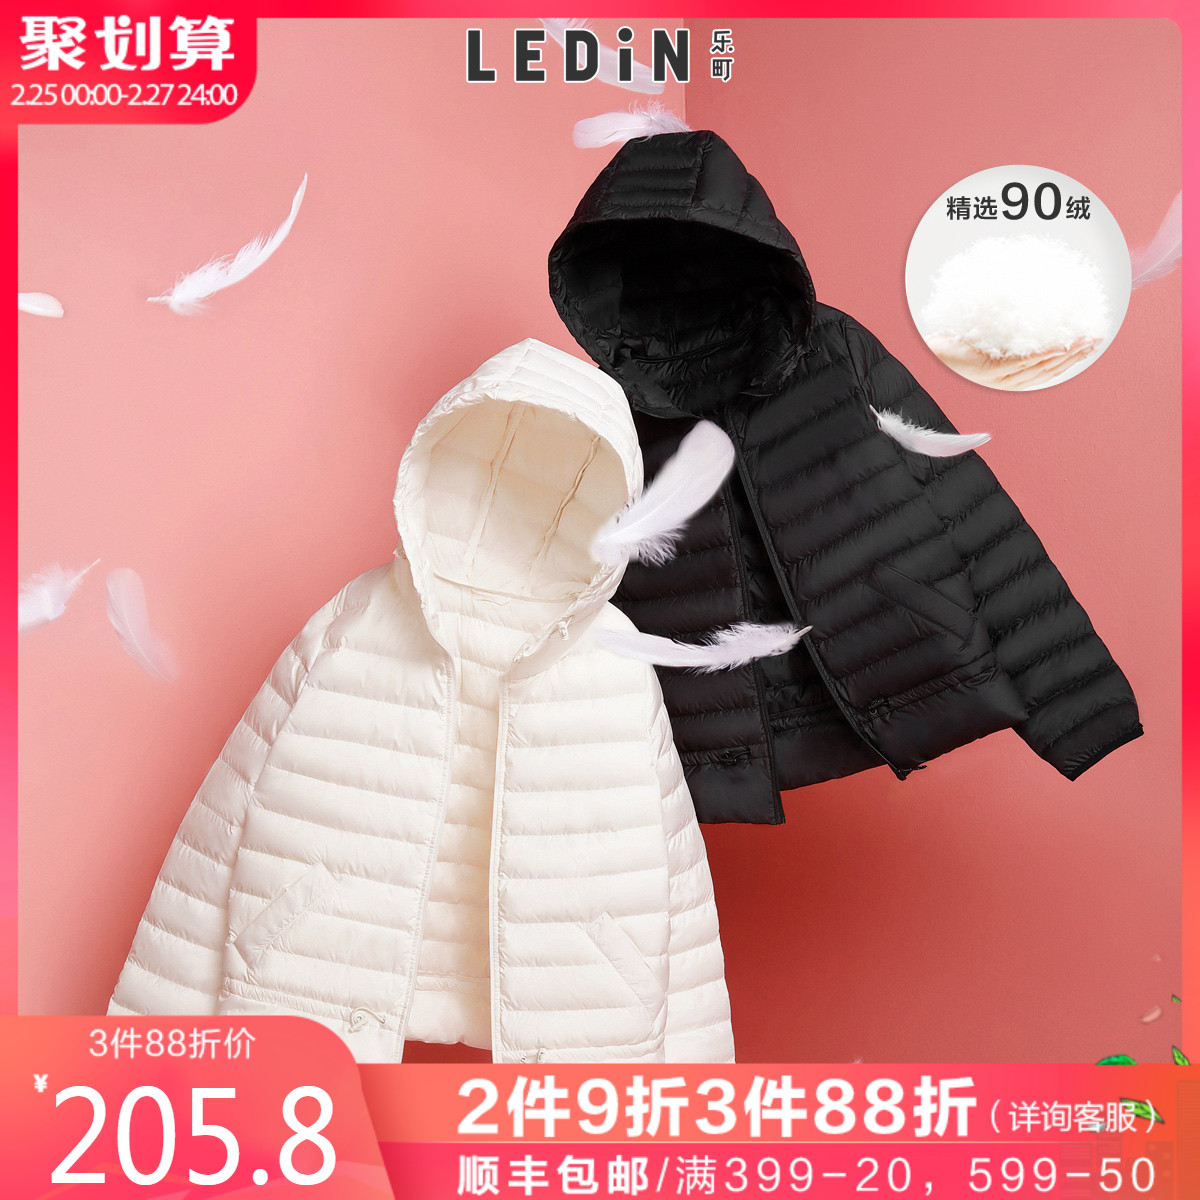 Women's winter dress of leding light and thin down jacket